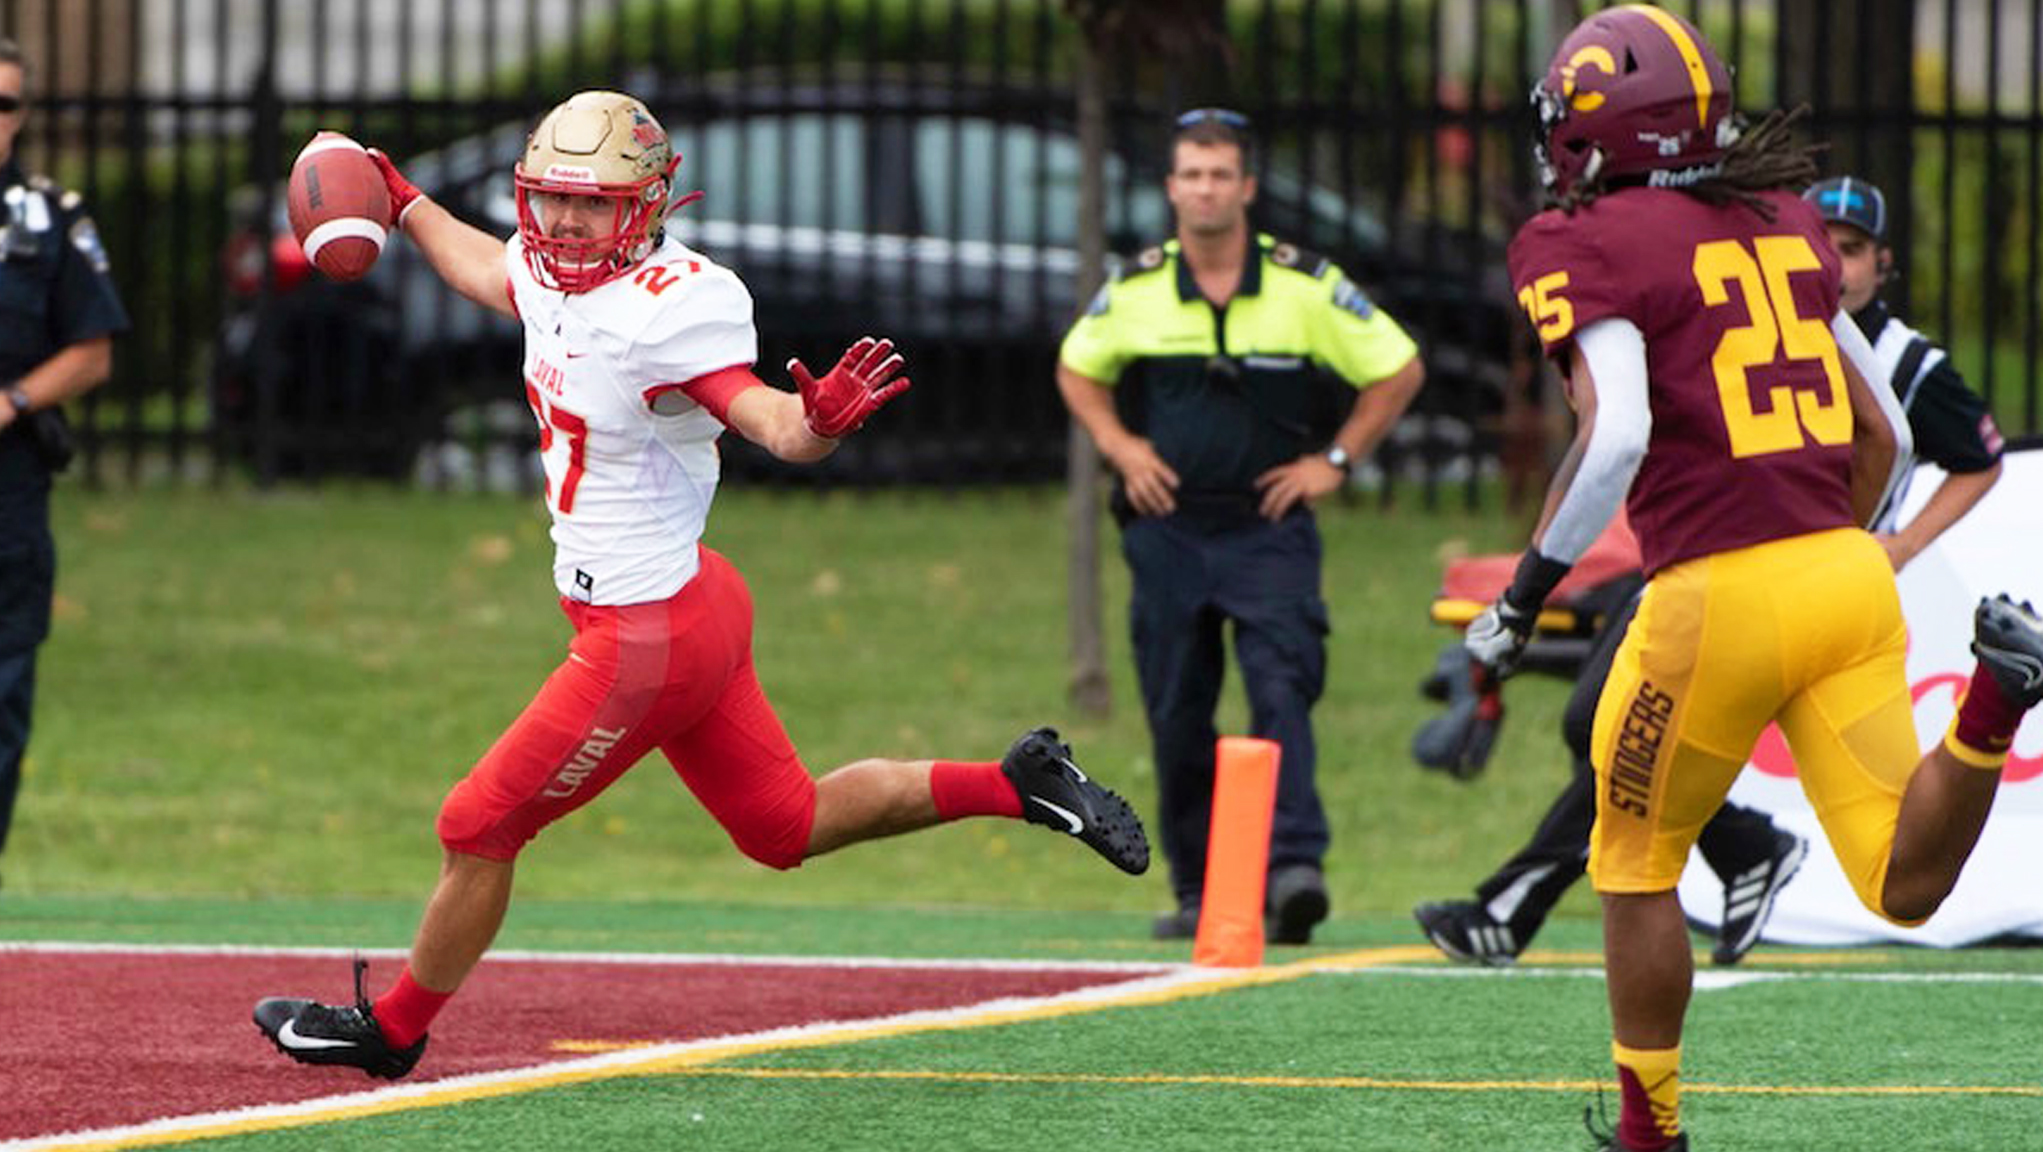 USports Top 10: Vanier Cup champion Laval once again unanimous pick at No. 1 - CFL.ca